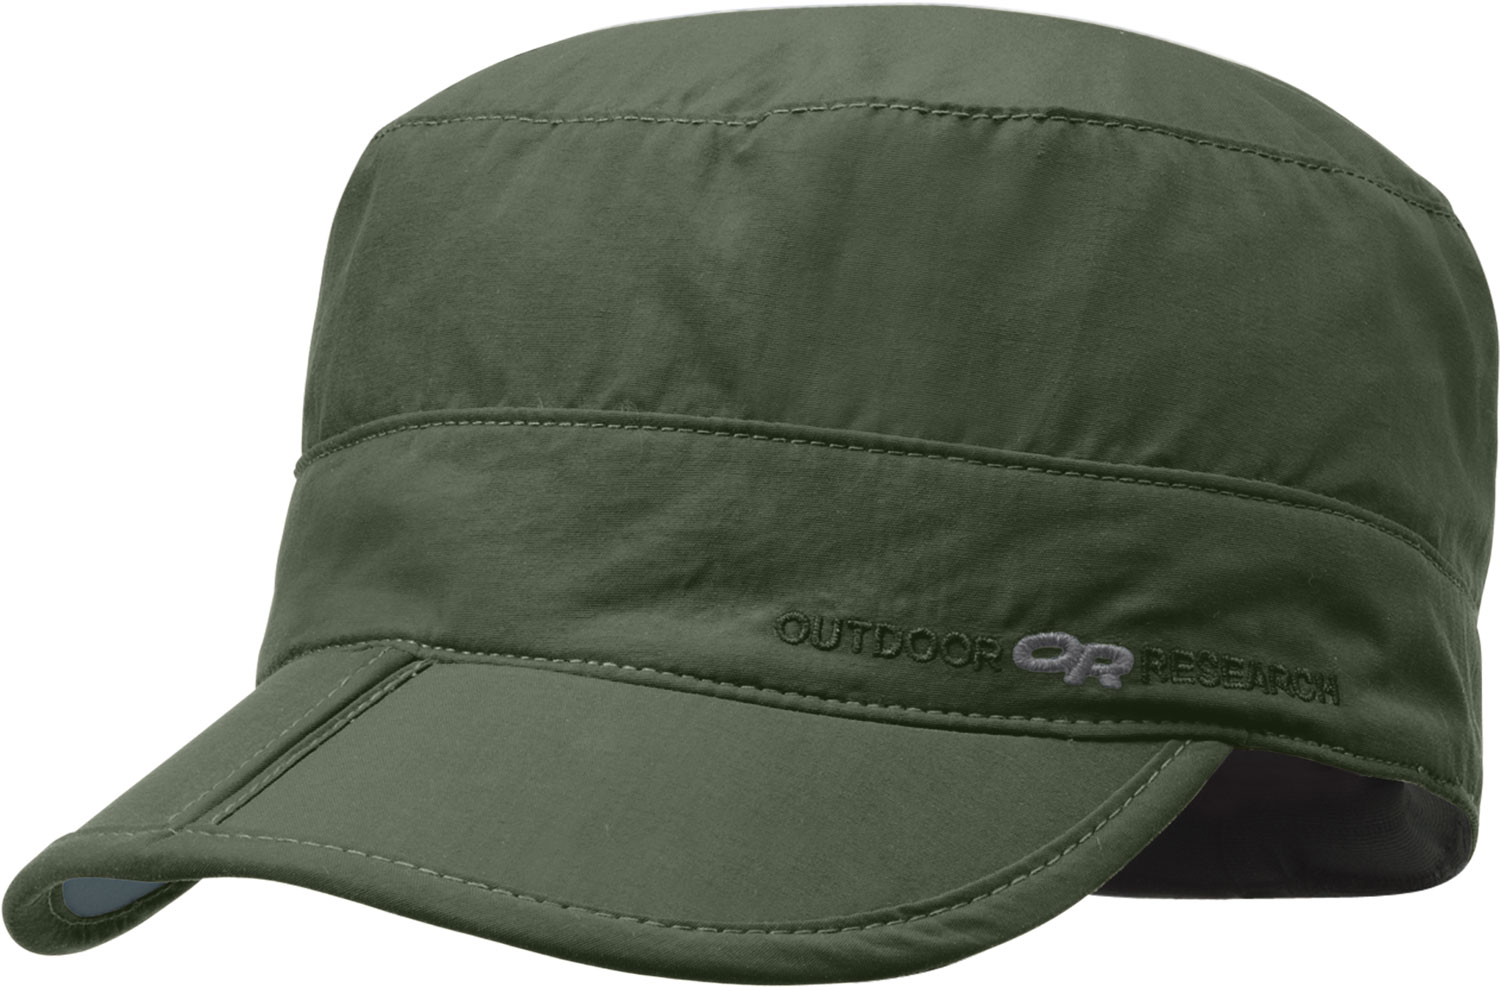 Key Features of the Outdoor Research Radar Pocket Hat: Supplex nylon fabric; UPF 30 TransAction headband  Folding brim for easy storage in pocket - $27.00